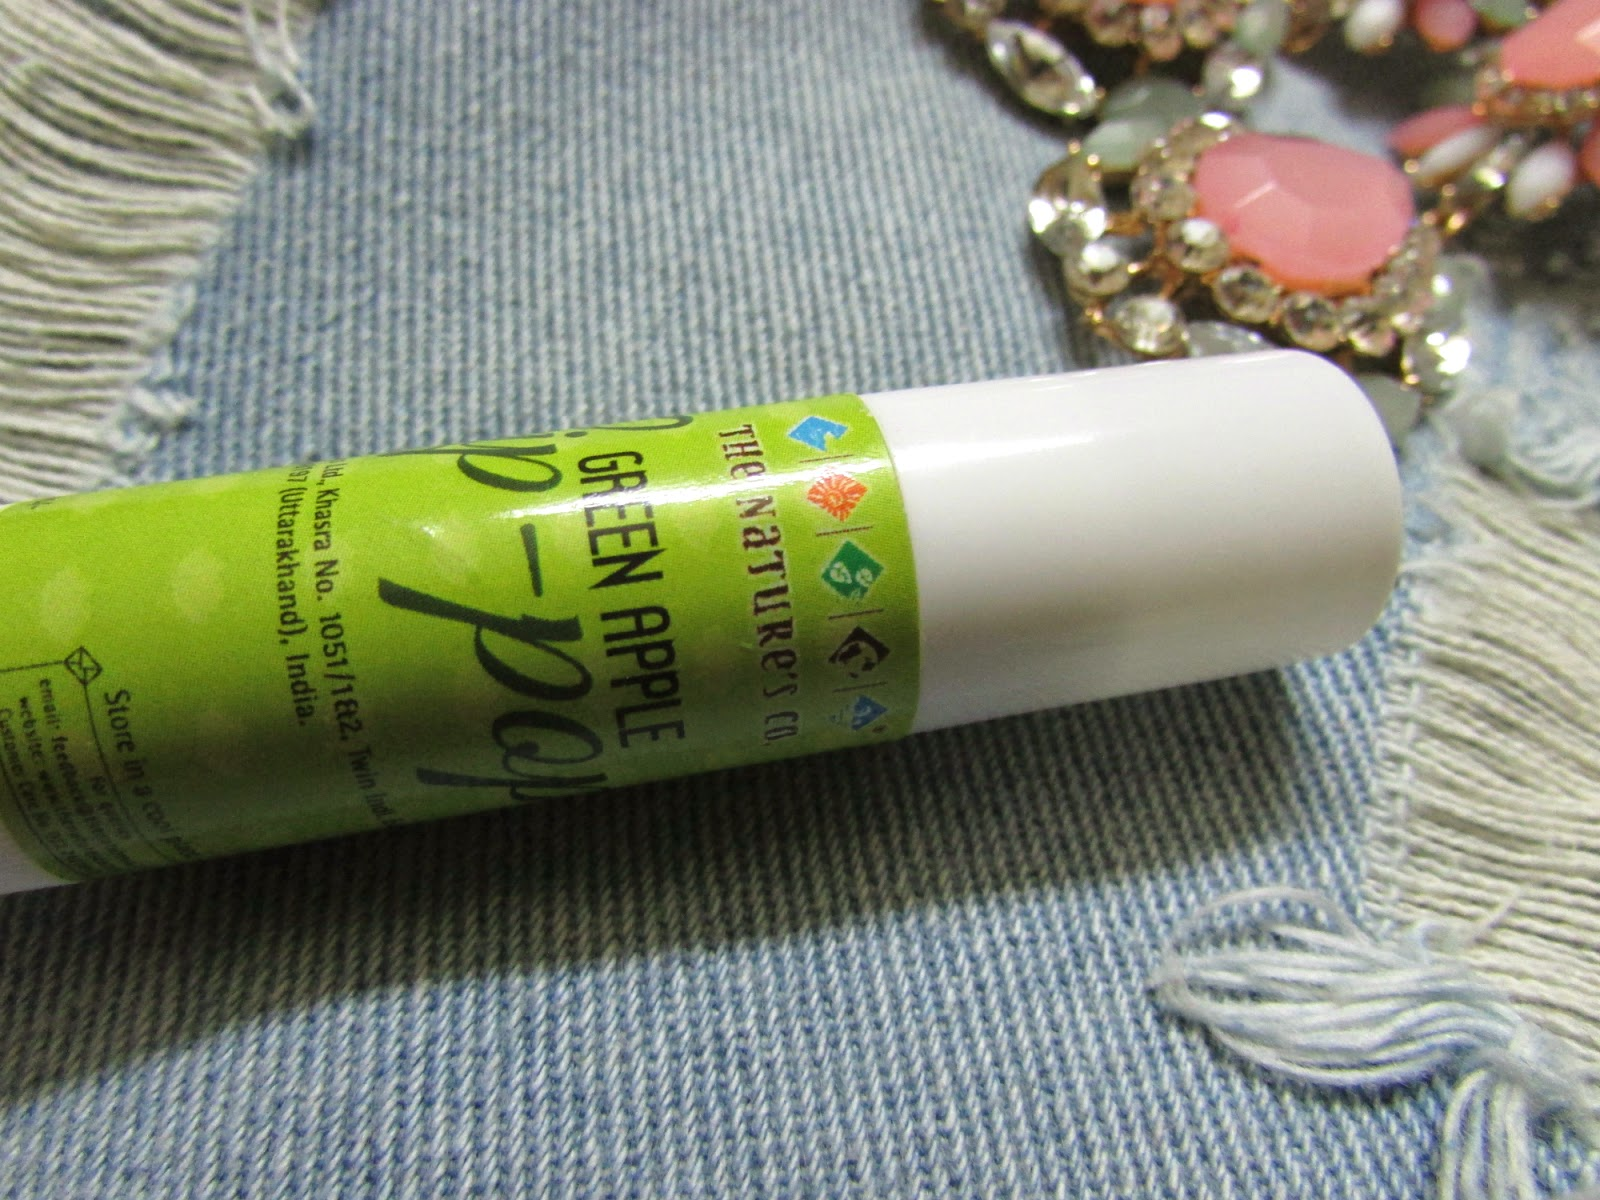 Natures Co Green Apple Lip Pop review, Natures Co Green Apple Lip Pop price, Natures Co Green Apple Lip Pop india online, Green Apple Lip Pop,all natural lip balm, paraben free lip balm, cruelty free lip balm, Natures Co Green Apple Lip Pop india, Natures Co Green Apple Lip Pop online, color less lip balm, flavoured lip balm, Natures co , natures co products , natures co product review, natures co india, natures co product review india, natures co products online, all natural products online, natures co prices, natures co lip butter , natures co lip butter price, natures co lip butter review, natures co lip butter price and review, natures co lip butter india, natures co lip butter online ,  natures co lip balm, natures co lip balm price, natures co lip balm review, natures co lip balm price and review, natures co lip balm india, natures co lip balm onlinenatures co chocolate mint lip butter , natures co chocolate mint lip butter price, natures co chocolate mint lip butter review, natures co chocolate mint lip butter price and review, natures co chocolate mint lip butter india, natures co chocolate mint lip butter online ,  natures co chocolate mint lip balm, natures co chocolate mint lip balm price, natures co chocolate mint lip balm review, natures co chocolate mint lip balm price and review, natures co chocolate mint lip balm india, natures co lip balm online, beauty , fashion,beauty and fashion,beauty blog, fashion blog , indian beauty blog,indian fashion blog, beauty and fashion blog, indian beauty and fashion blog, indian bloggers, indian beauty bloggers, indian fashion bloggers,indian bloggers online, top 10 indian bloggers, top indian bloggers,top 10 fashion bloggers, indian bloggers on blogspot,home remedies, how to